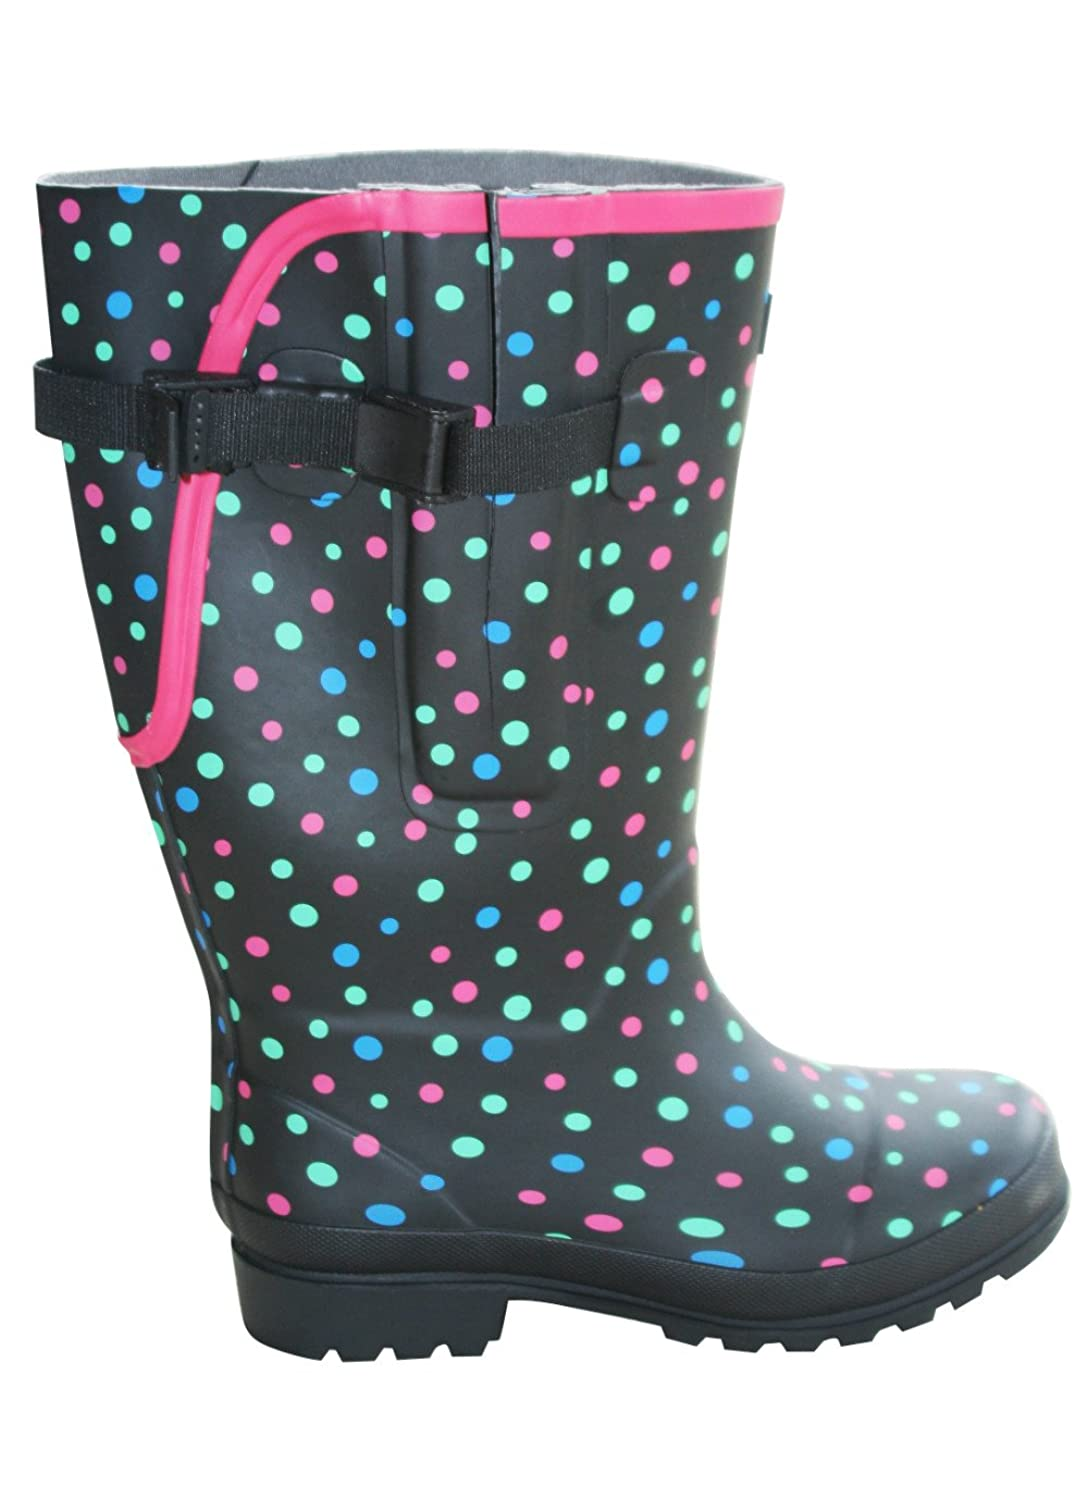 d16426091784 Jileon Extra Wide Calf Rubber Rain Boots with Rear Expansion -Widest Fit  Boots in The US - up to 21 inch Calves- Wide in The Foot and Ankle -Durable  Boots ...